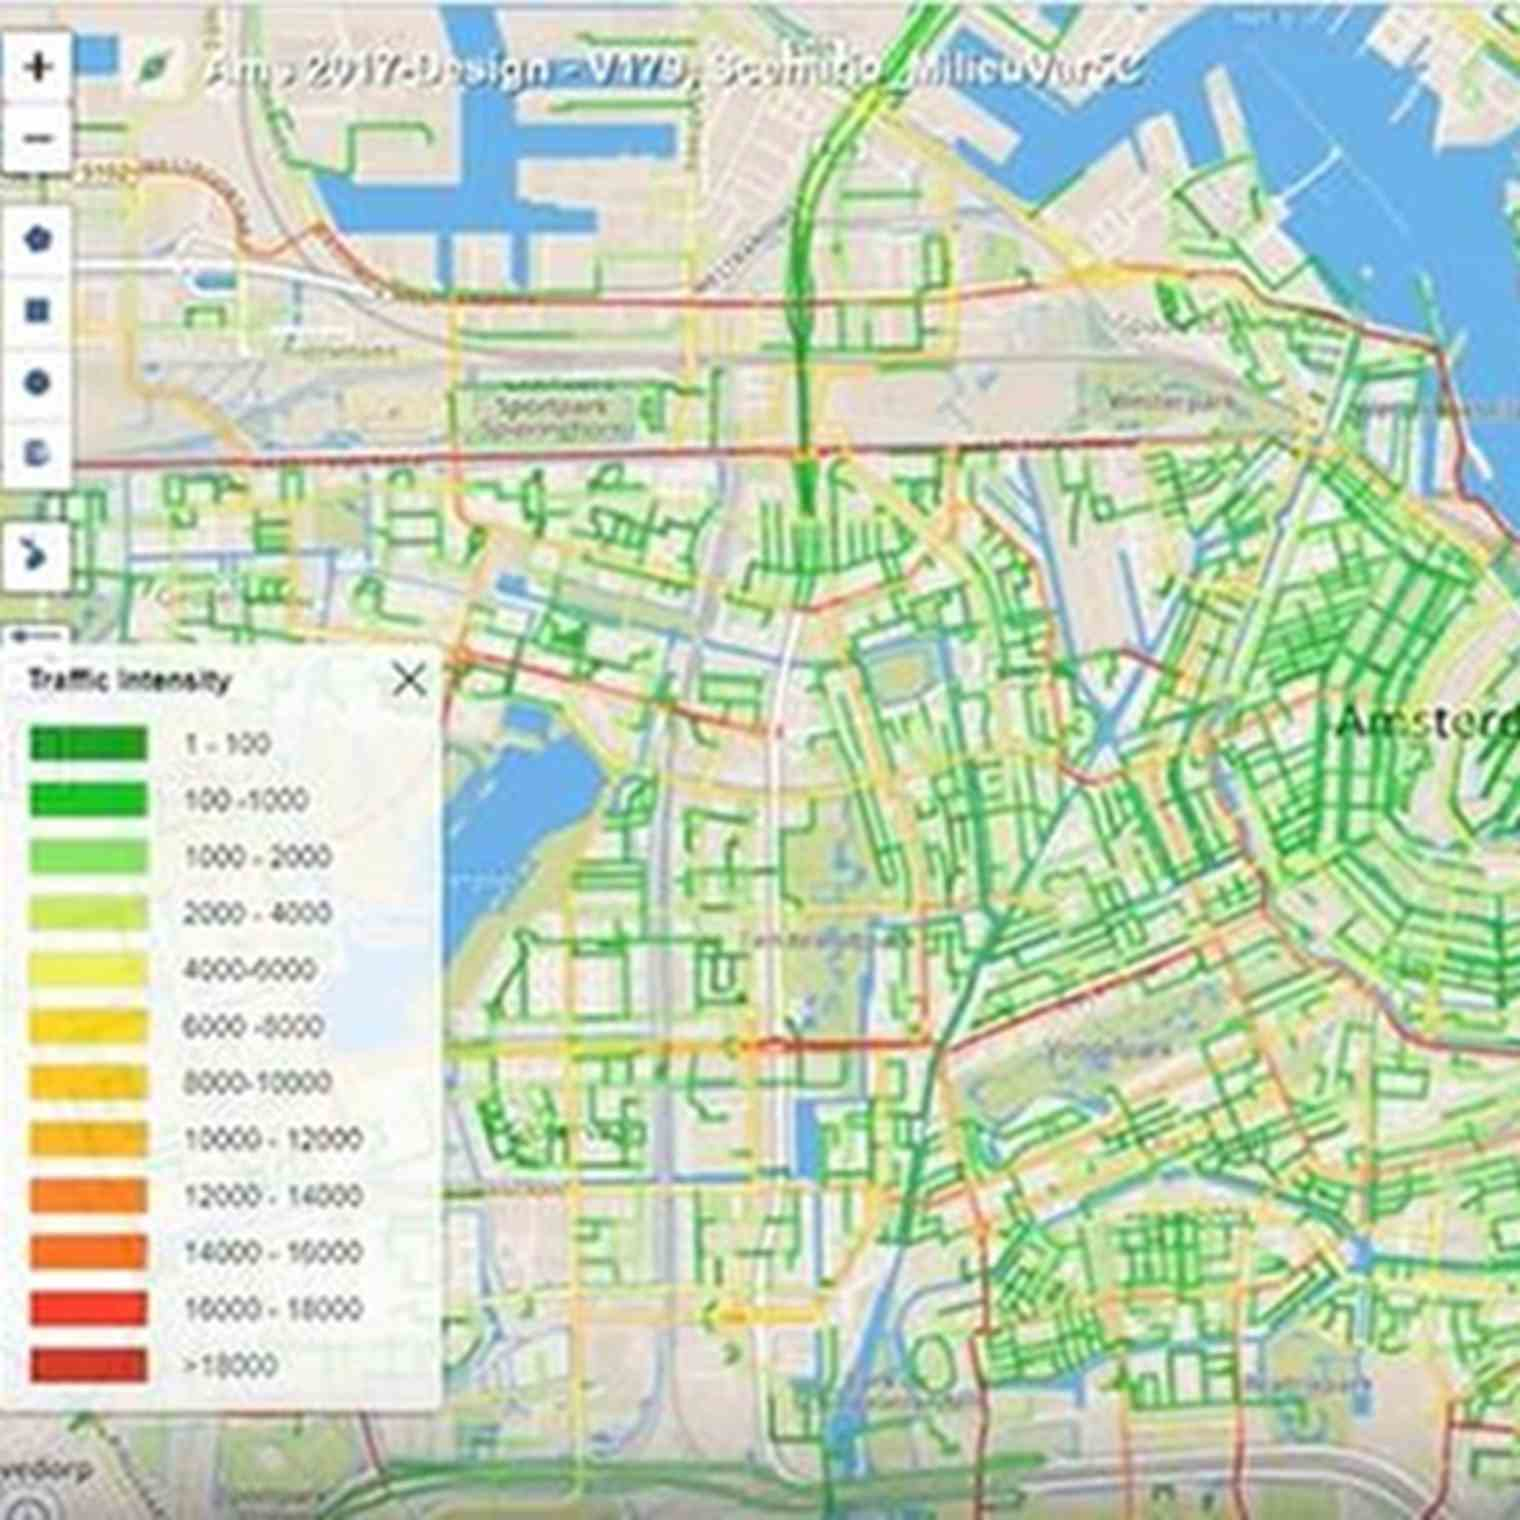 Tno Innovation For Life Envelope Follower Circuit Google Zoeken Uses Urban Strategy To Map The Effects Of Planning In Amsterdam